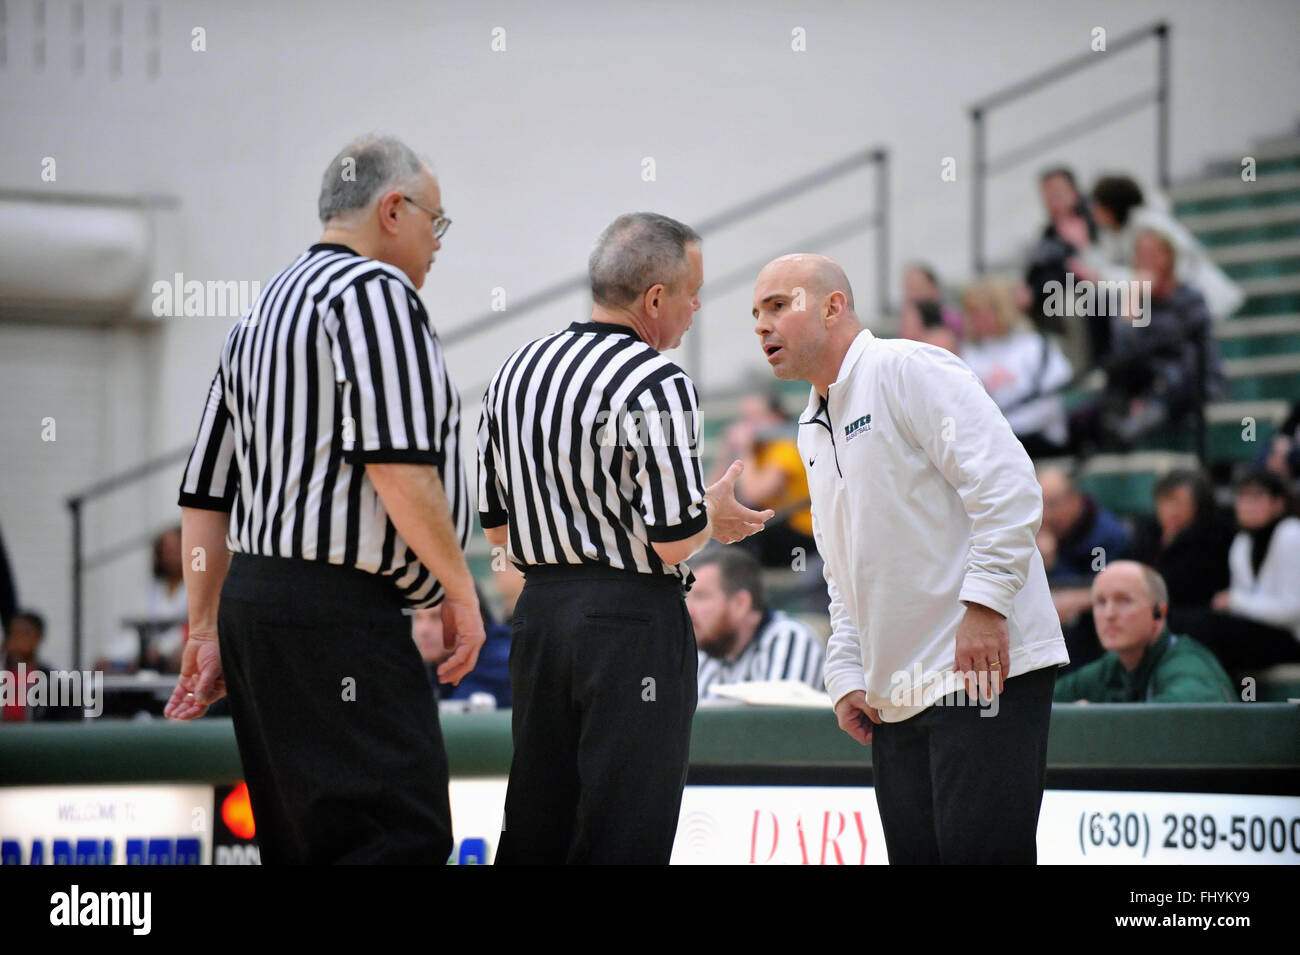 Following a call that he did not agree with, a high school basketball coach leans in to obtain an explanation from - Stock Image